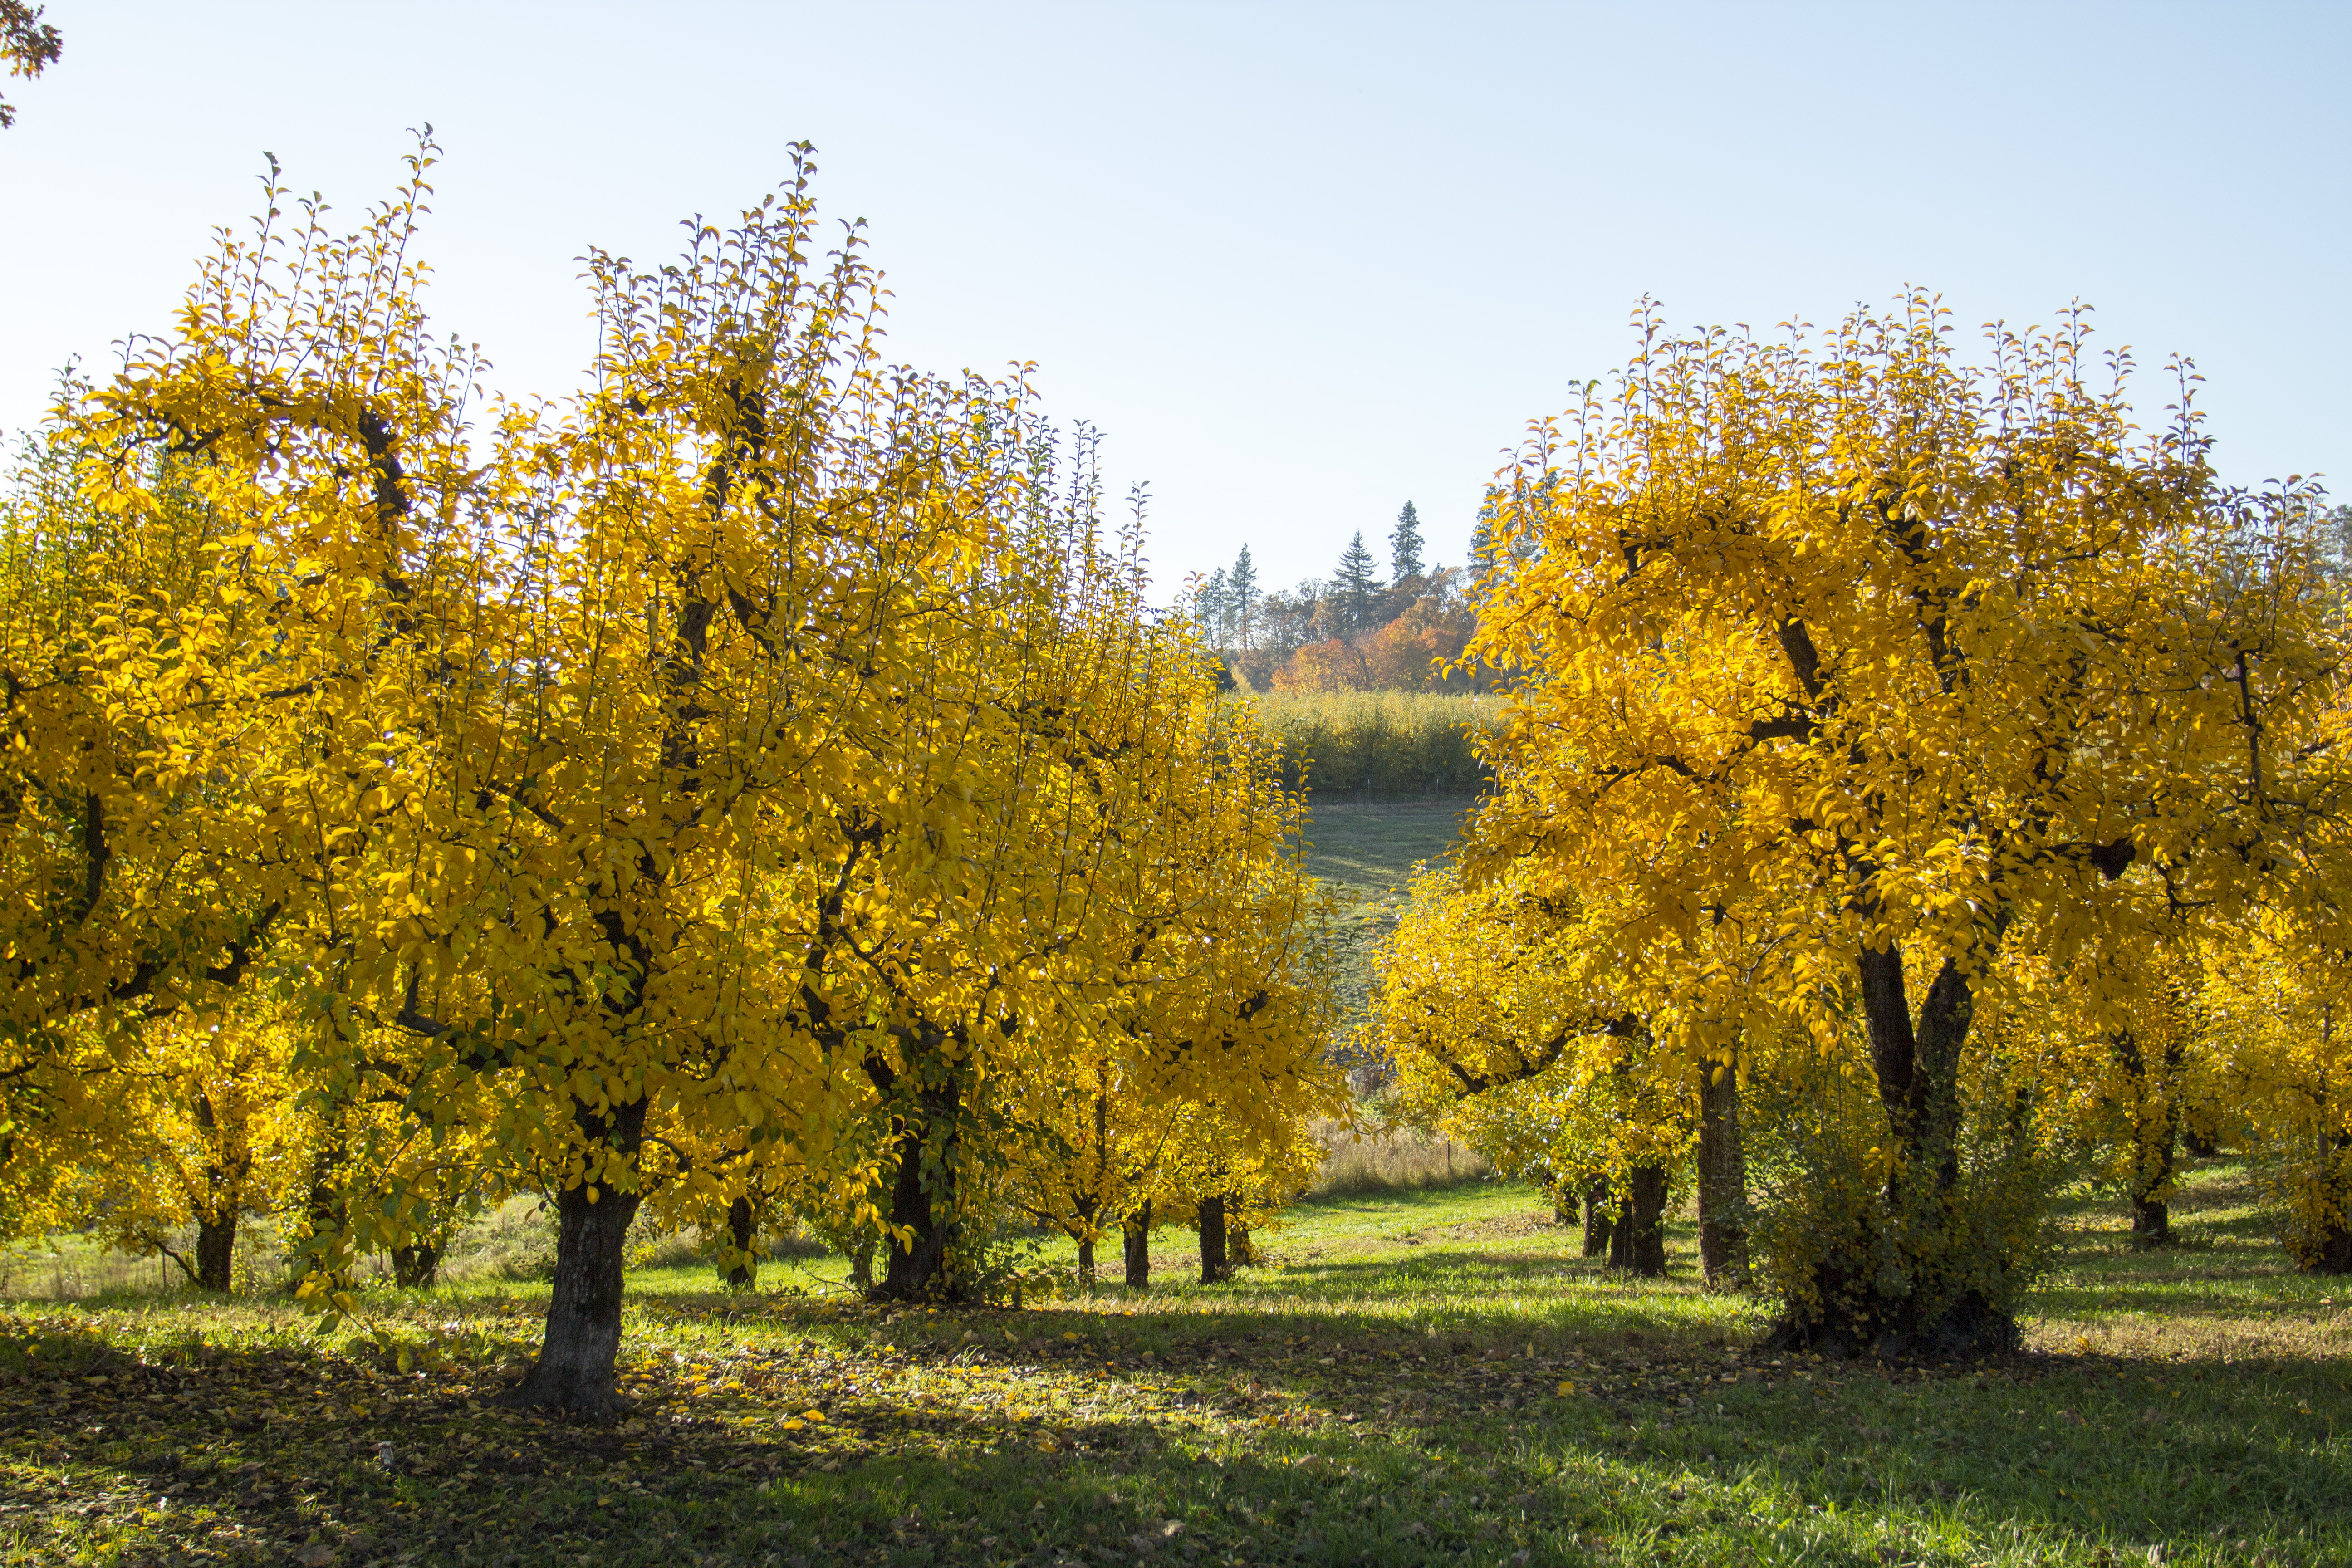 Orchard trees in autumn, oregon photo